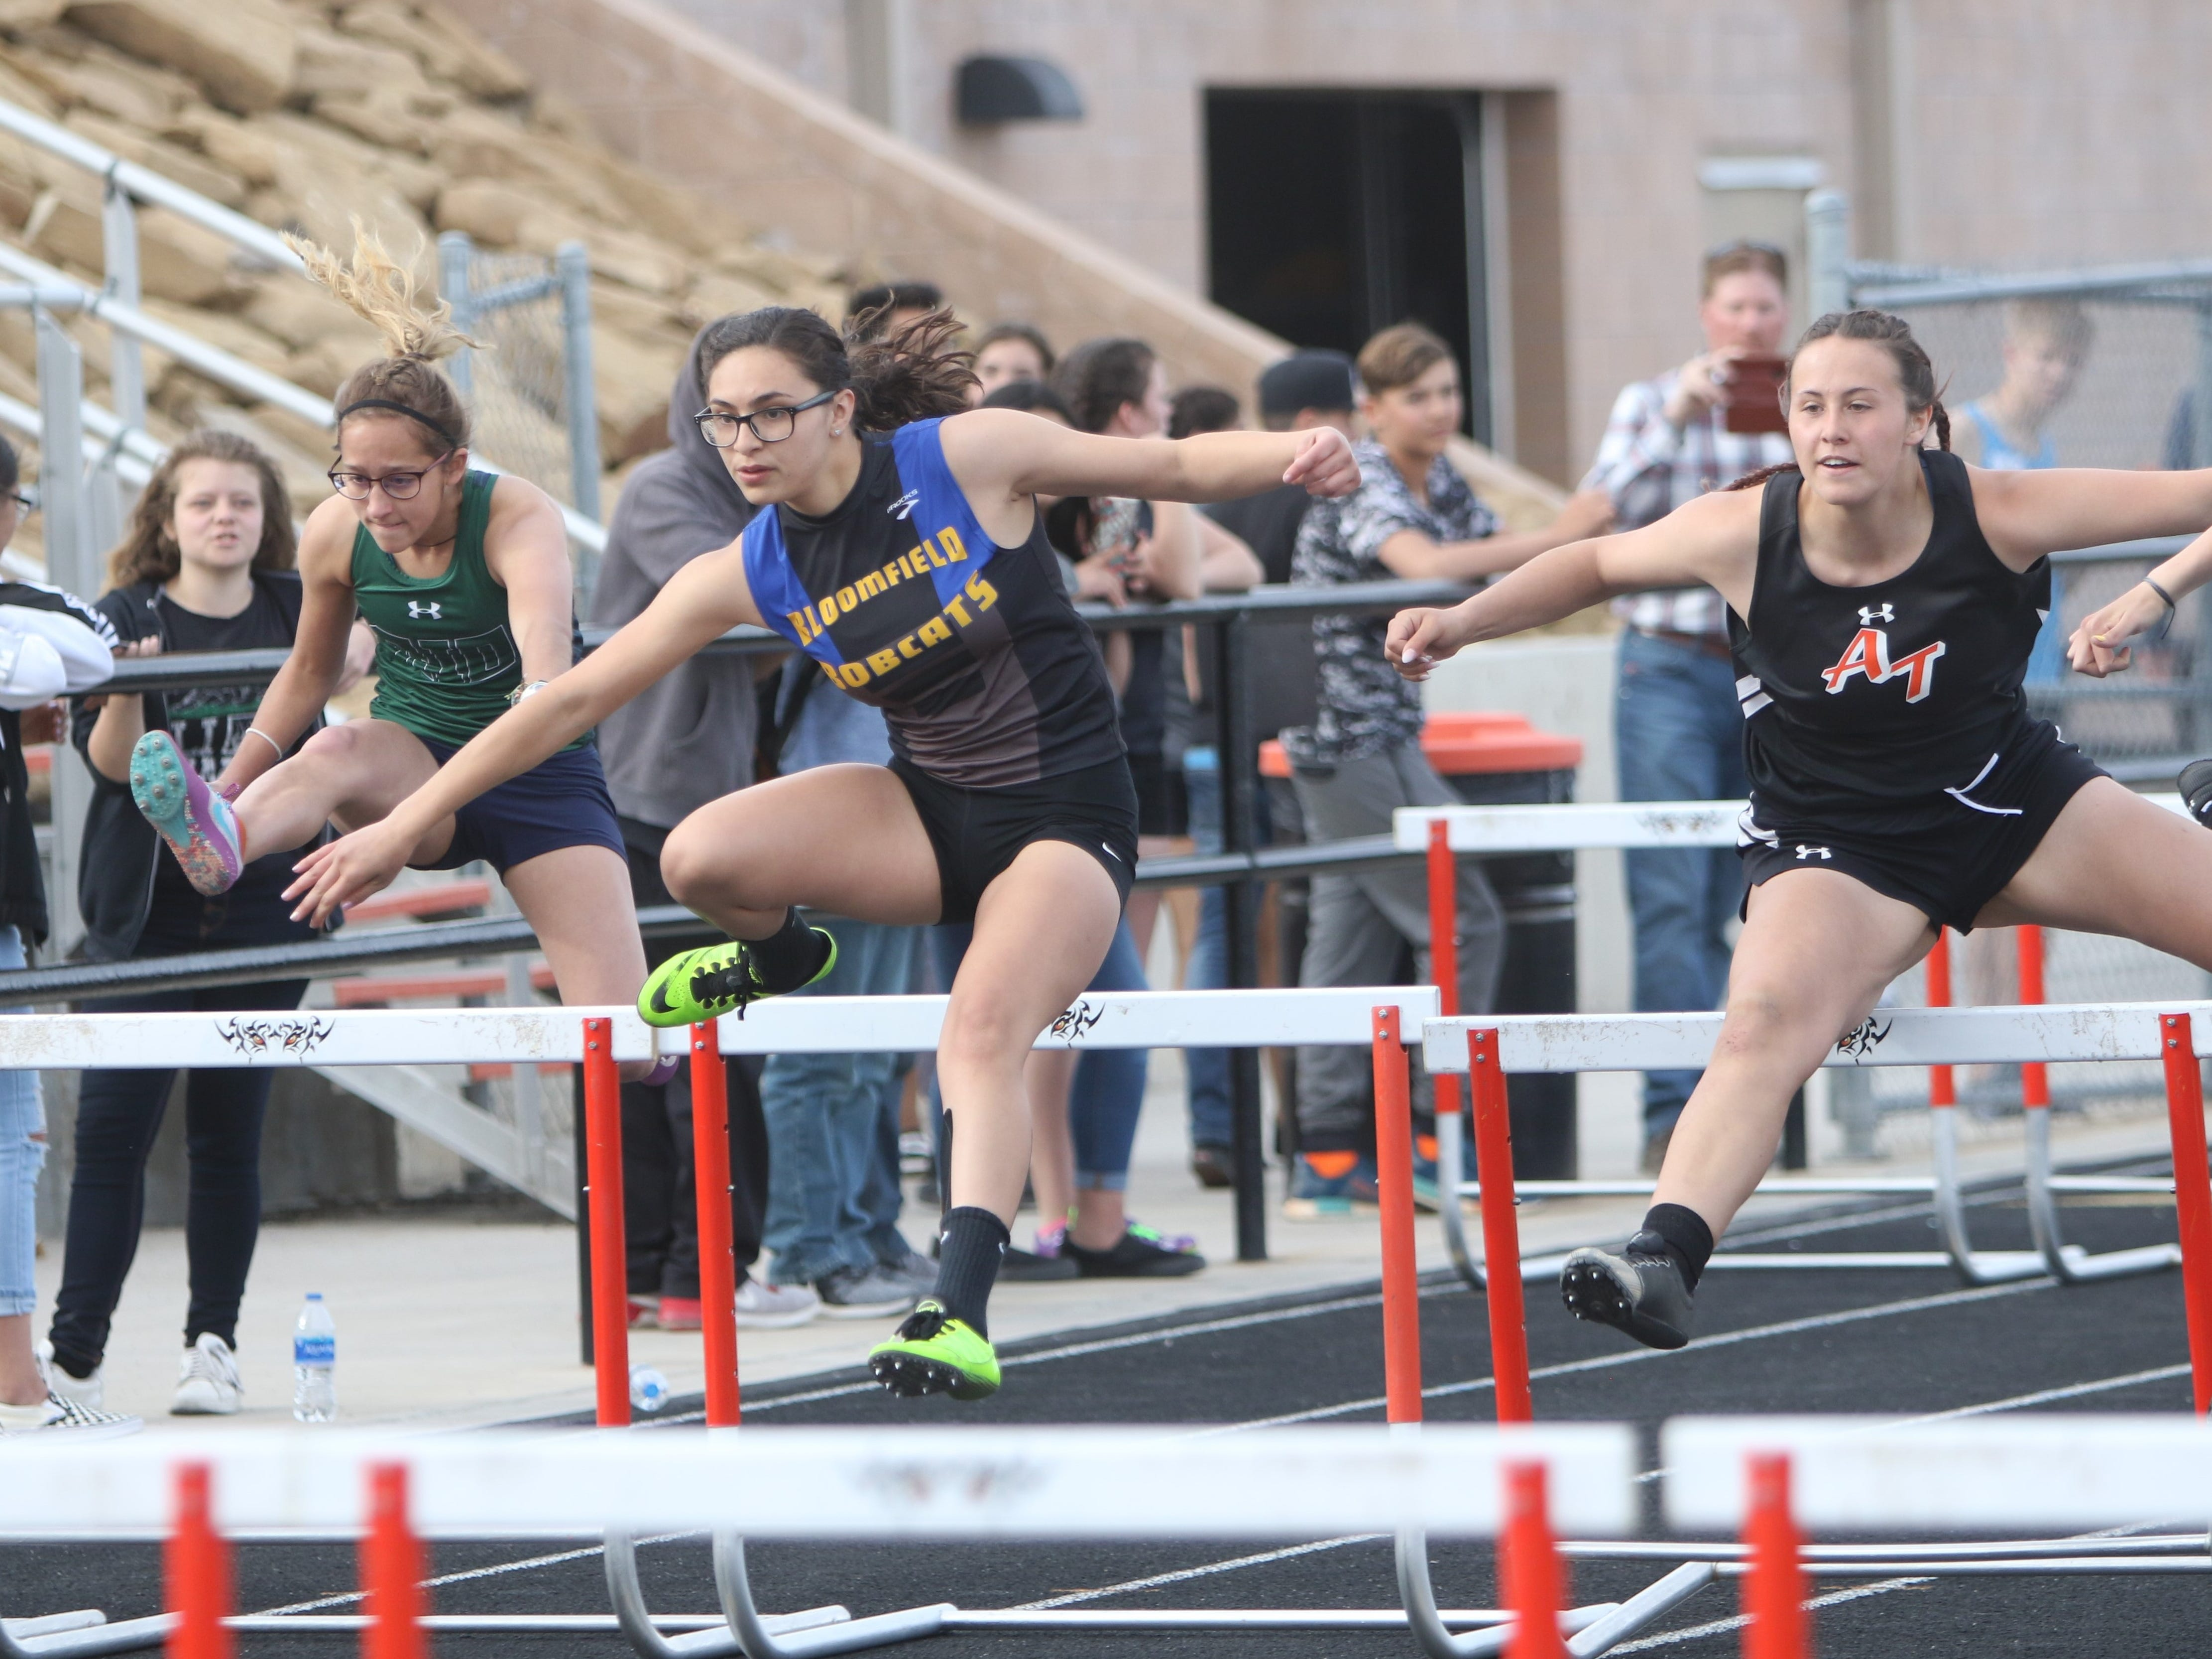 Bloomfield's Lylie Nunez keeps pace with Aztec's Helen Moore (right) with the group in the third heat of the girls 100-meter hurdles during Friday's Top Gun Invitational at Aztec. Moore placed sixth in 17.62 seconds, while Nunez tied for seventh with Taos' Abigail Gunther in 17.70 seconds.